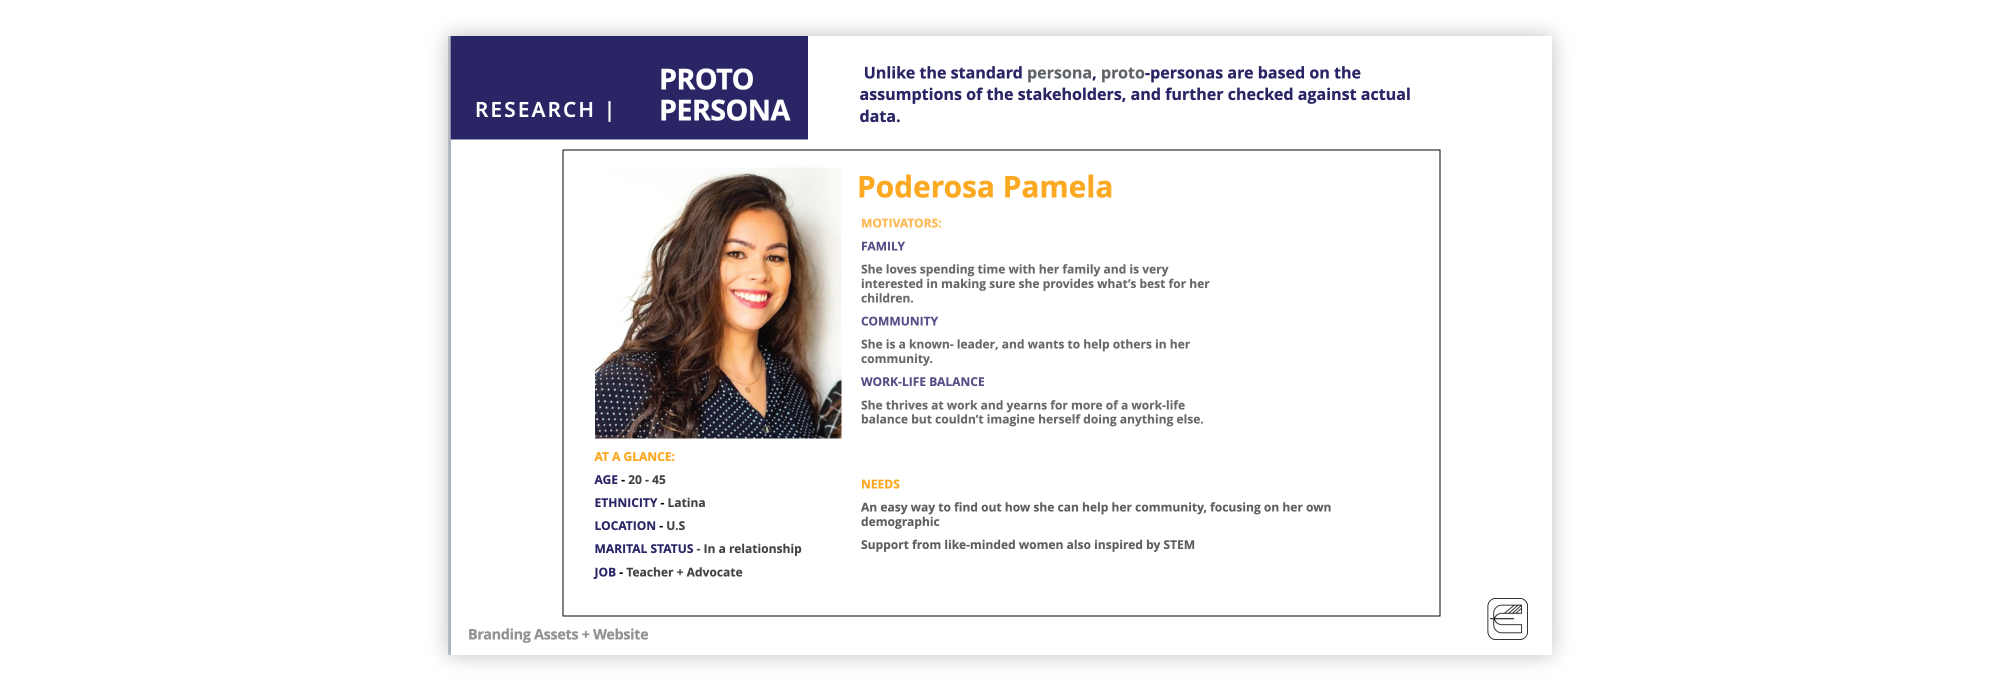 PSF Persona